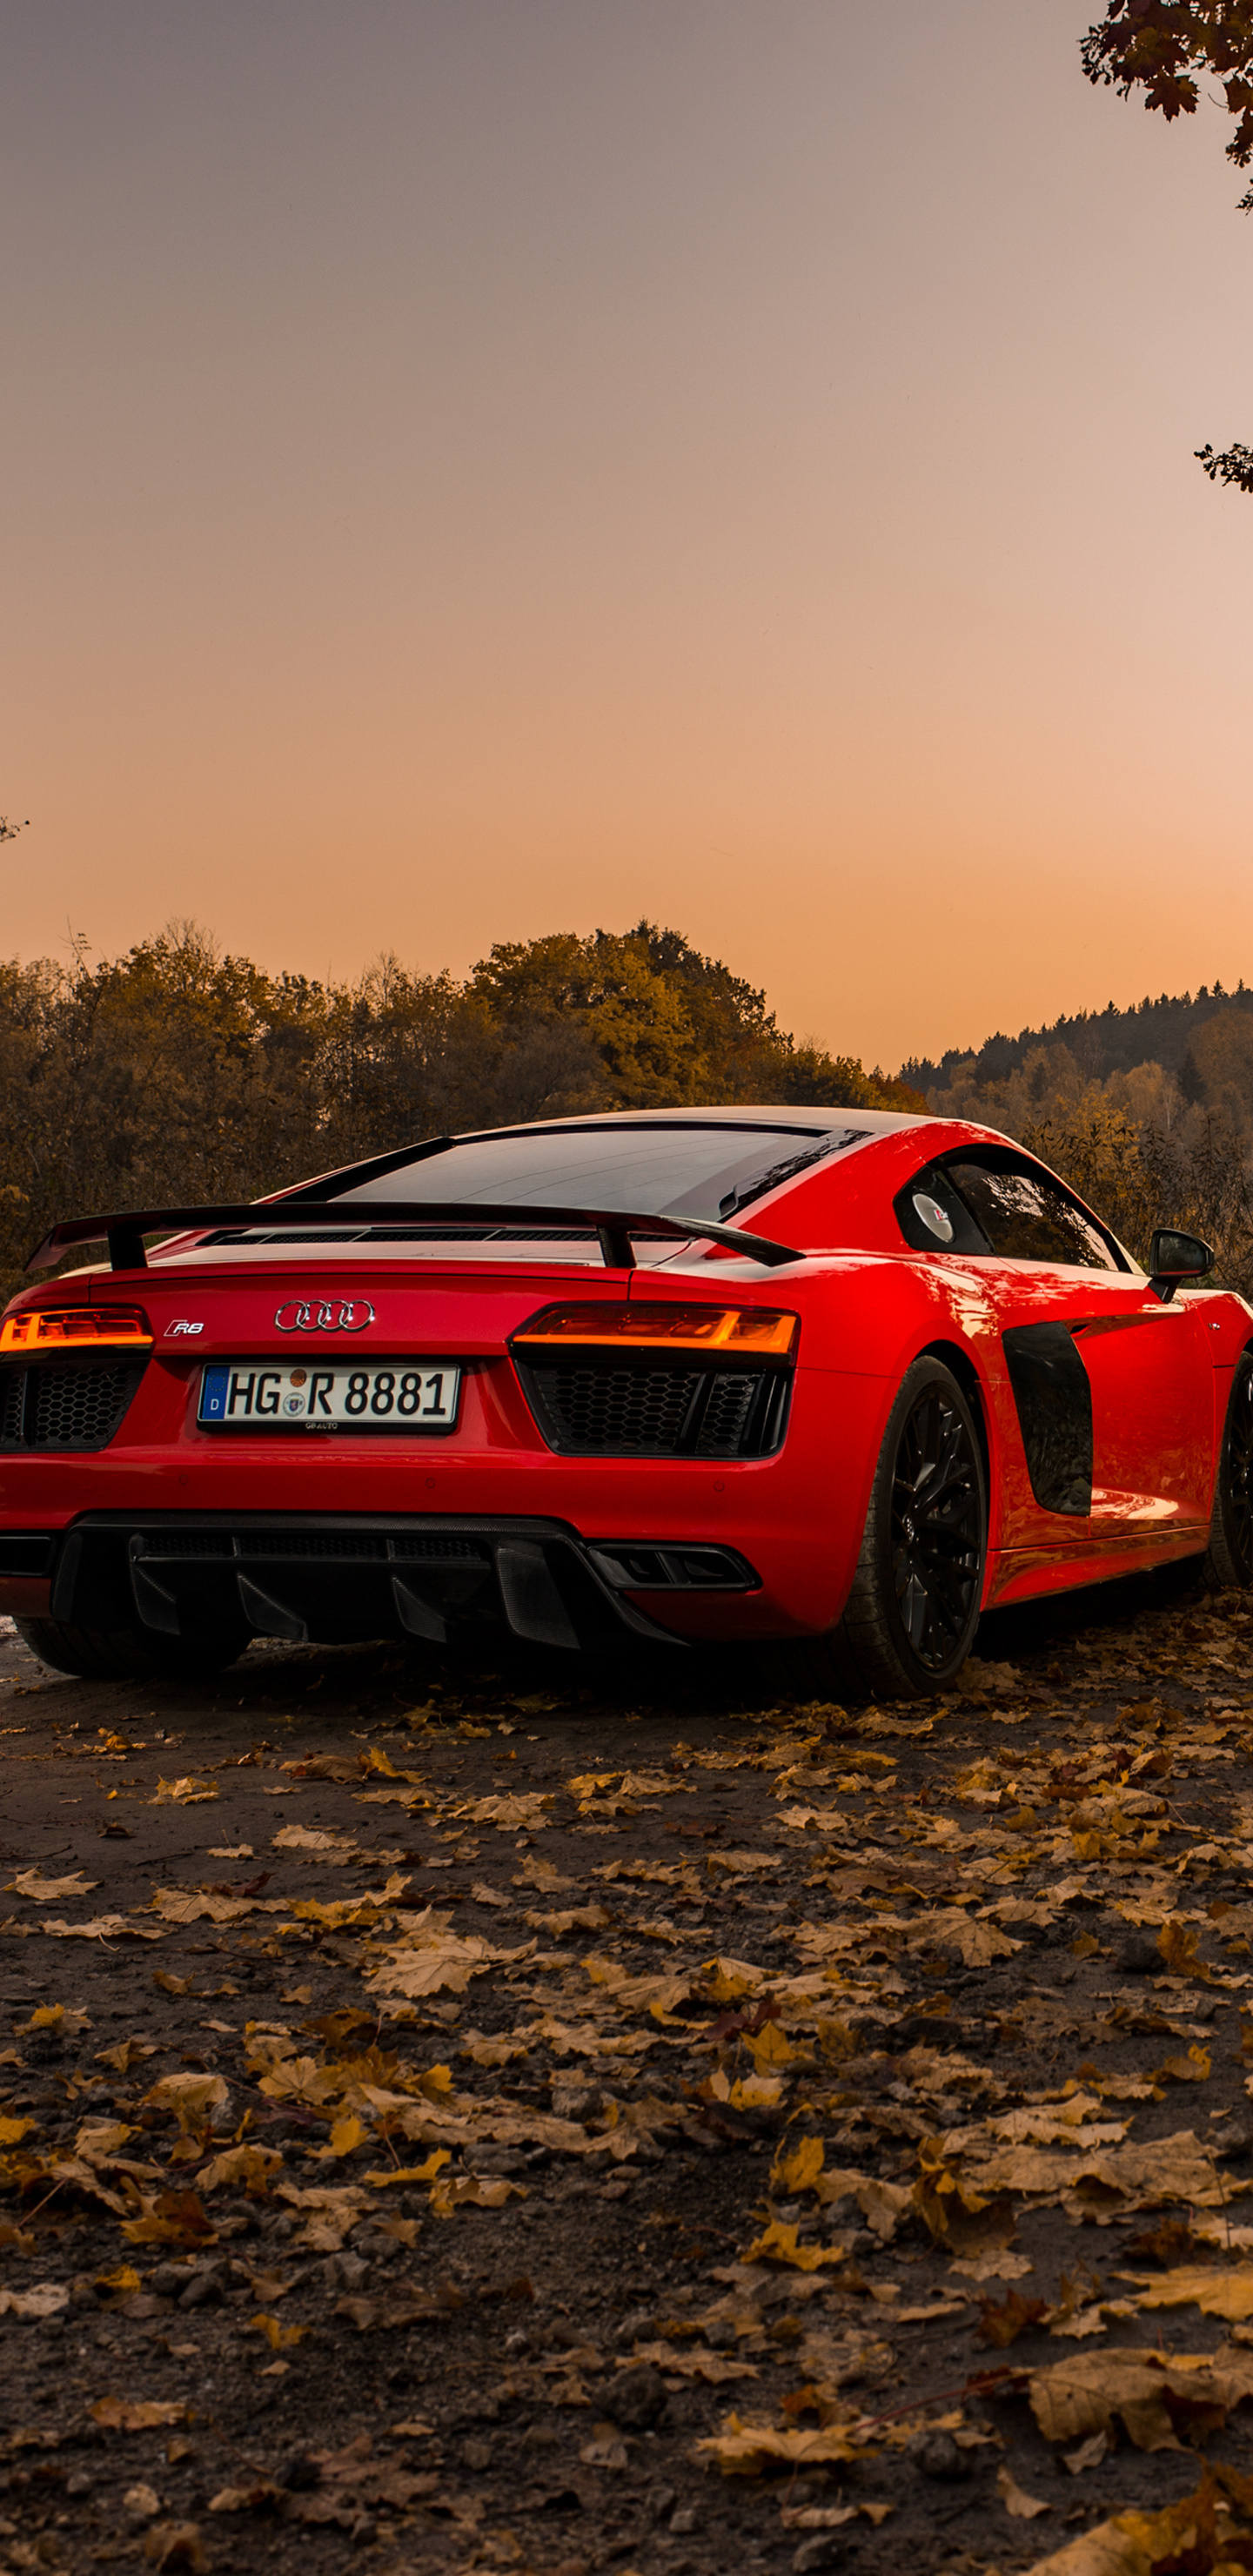 1440x2960 Audi R8 V10 Plus Samsung Galaxy Note 9 8 S9 S8 S8 Qhd Hd 4k Wallpapers Images Backgrounds Photos And Pictures